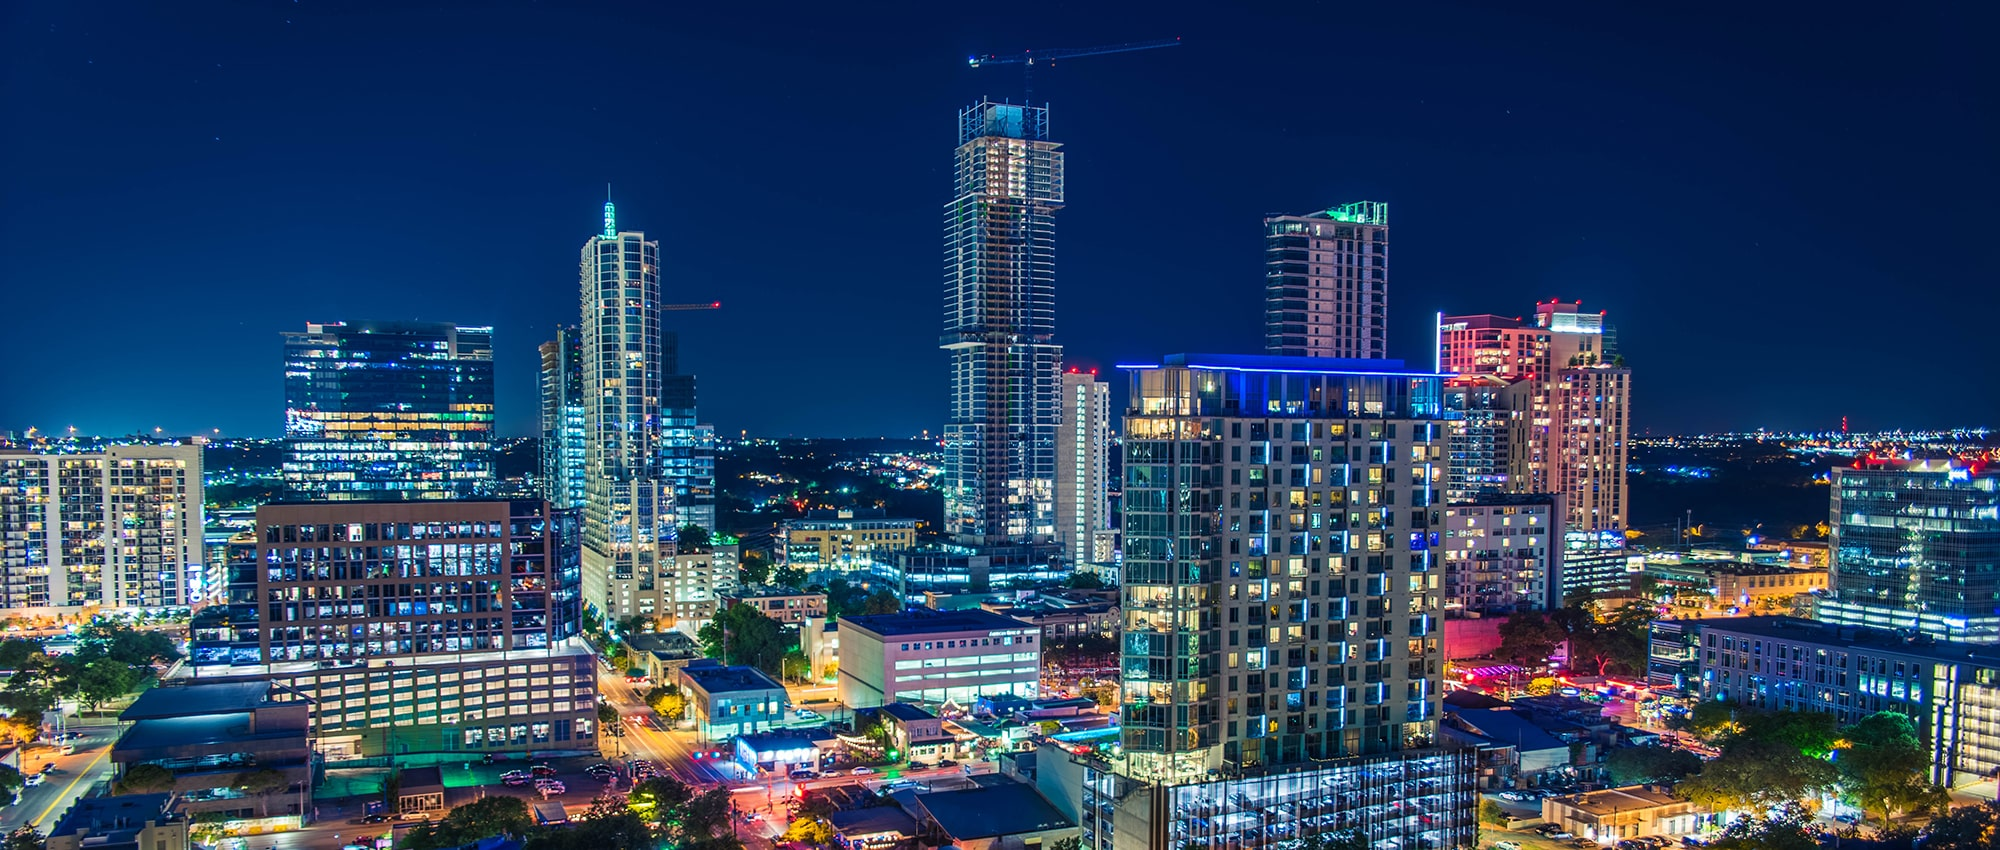 11 Towers That Will Reshape The Downtown Austin Skyline In